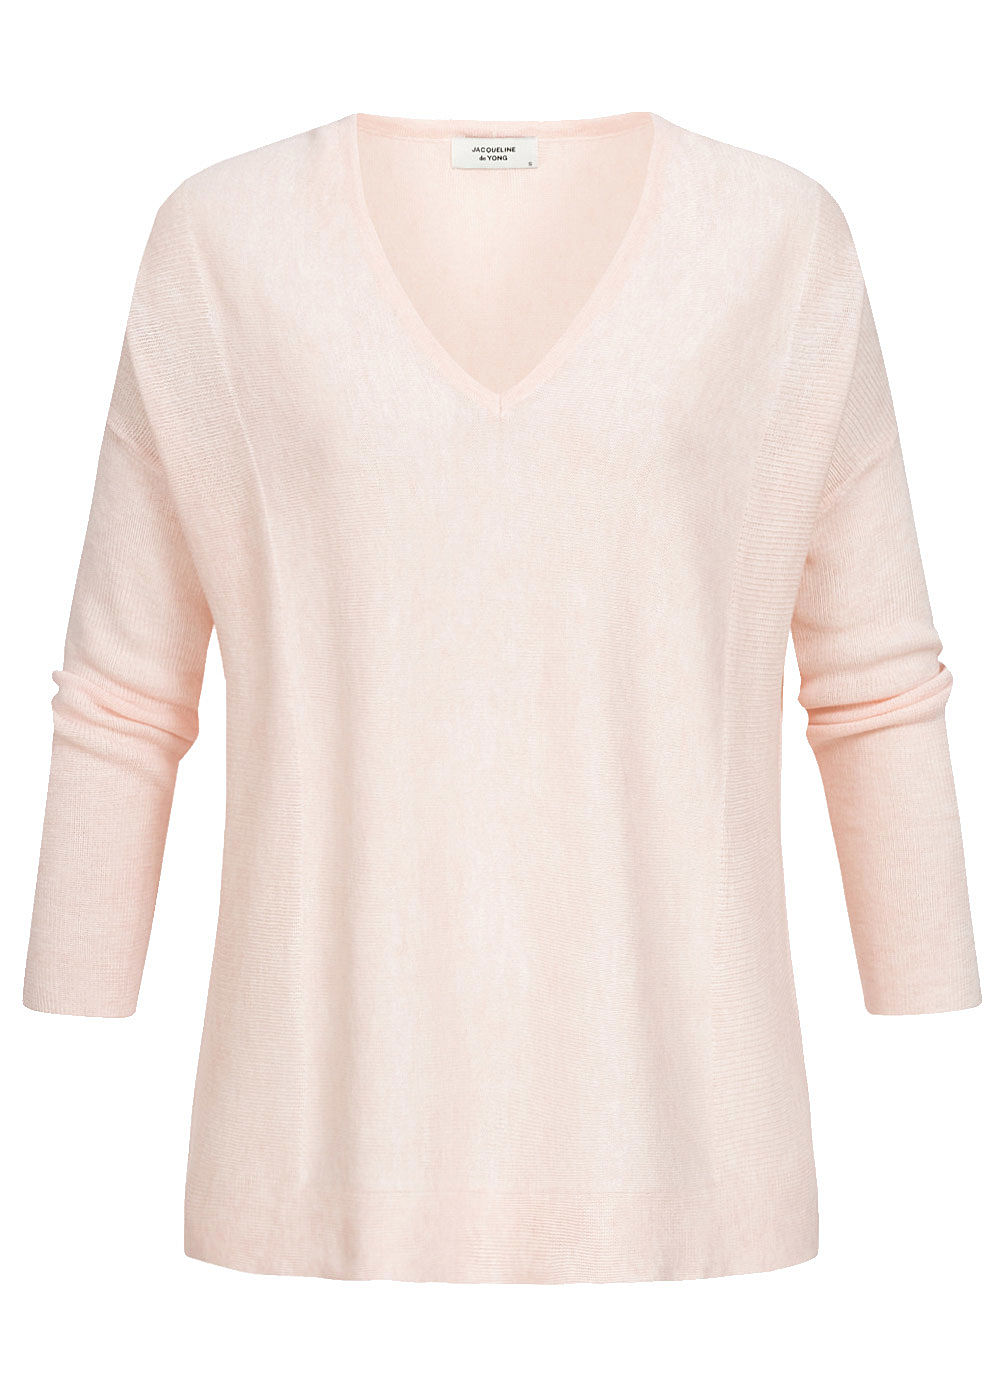 JDY by ONLY Overzied Knit Pullover potpourri rosa - Art.-Nr.: 19072848